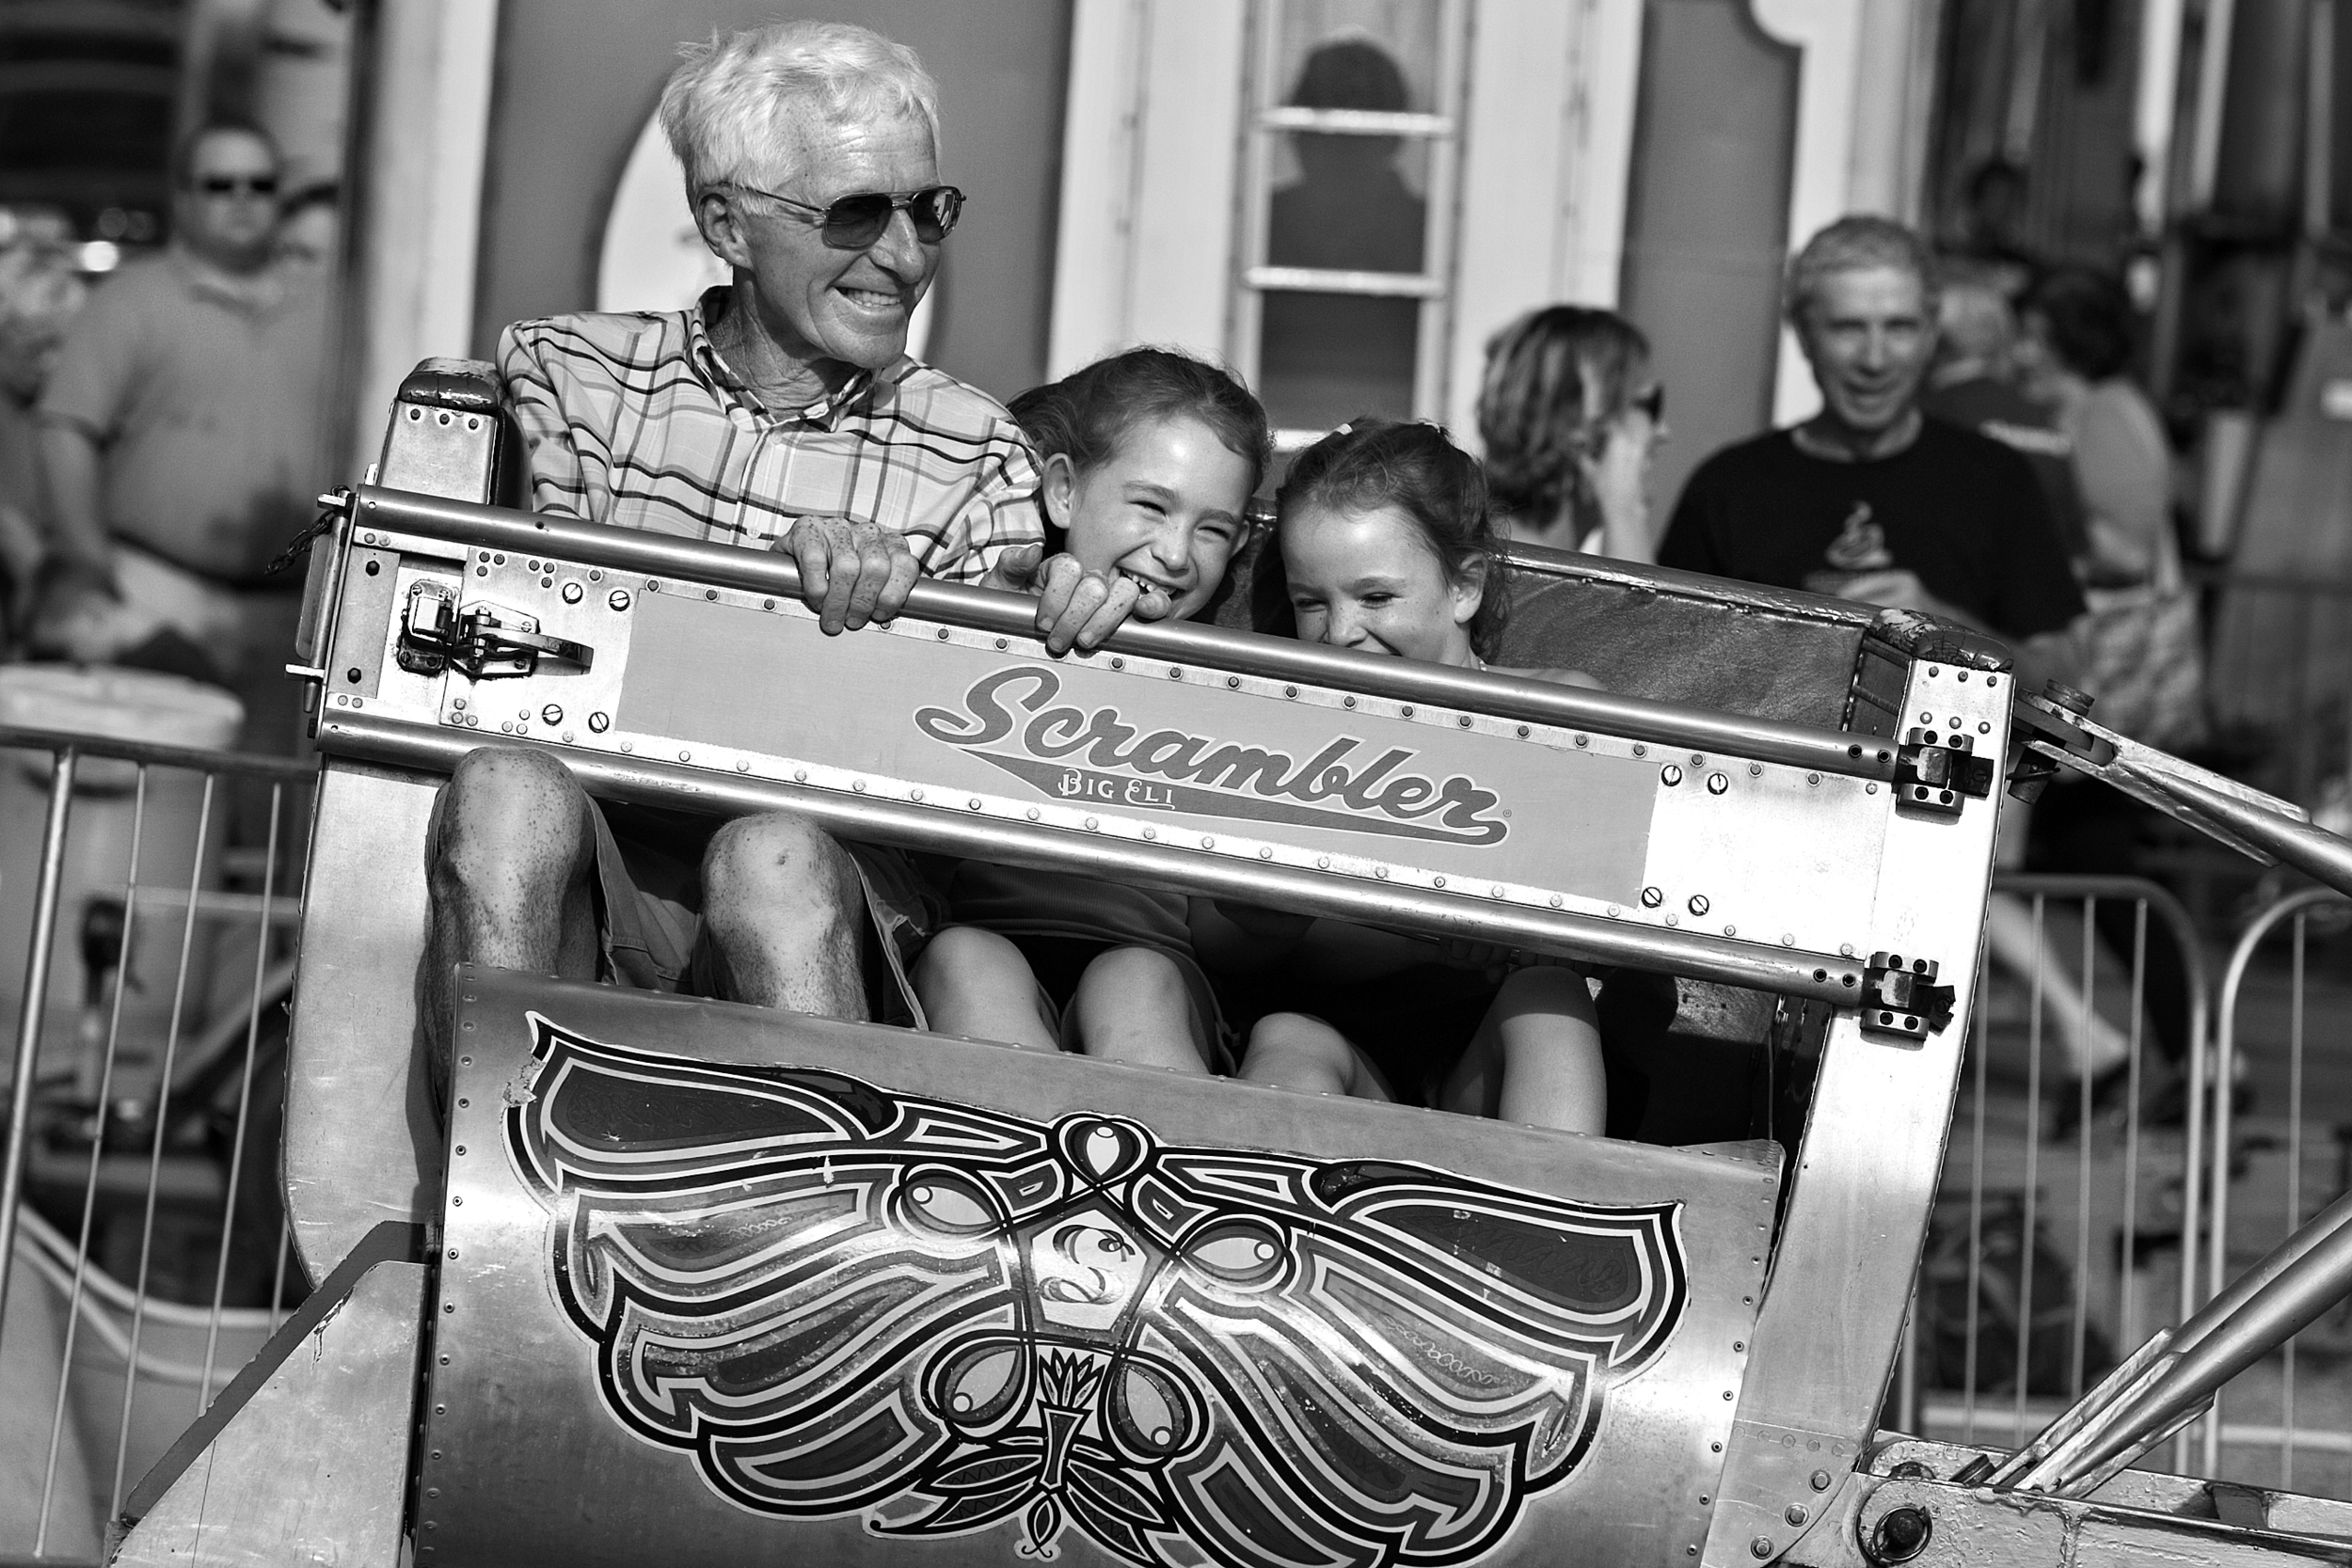 The Scrambler carnival ride has been one of the highlights of the Jasper Strassenfest for many years for Red. Joining him on the ride during last year's Strassenfest were two of his granddaughters, Merin Buck, 5, right, and her sister Maci, 8, of Jasper.